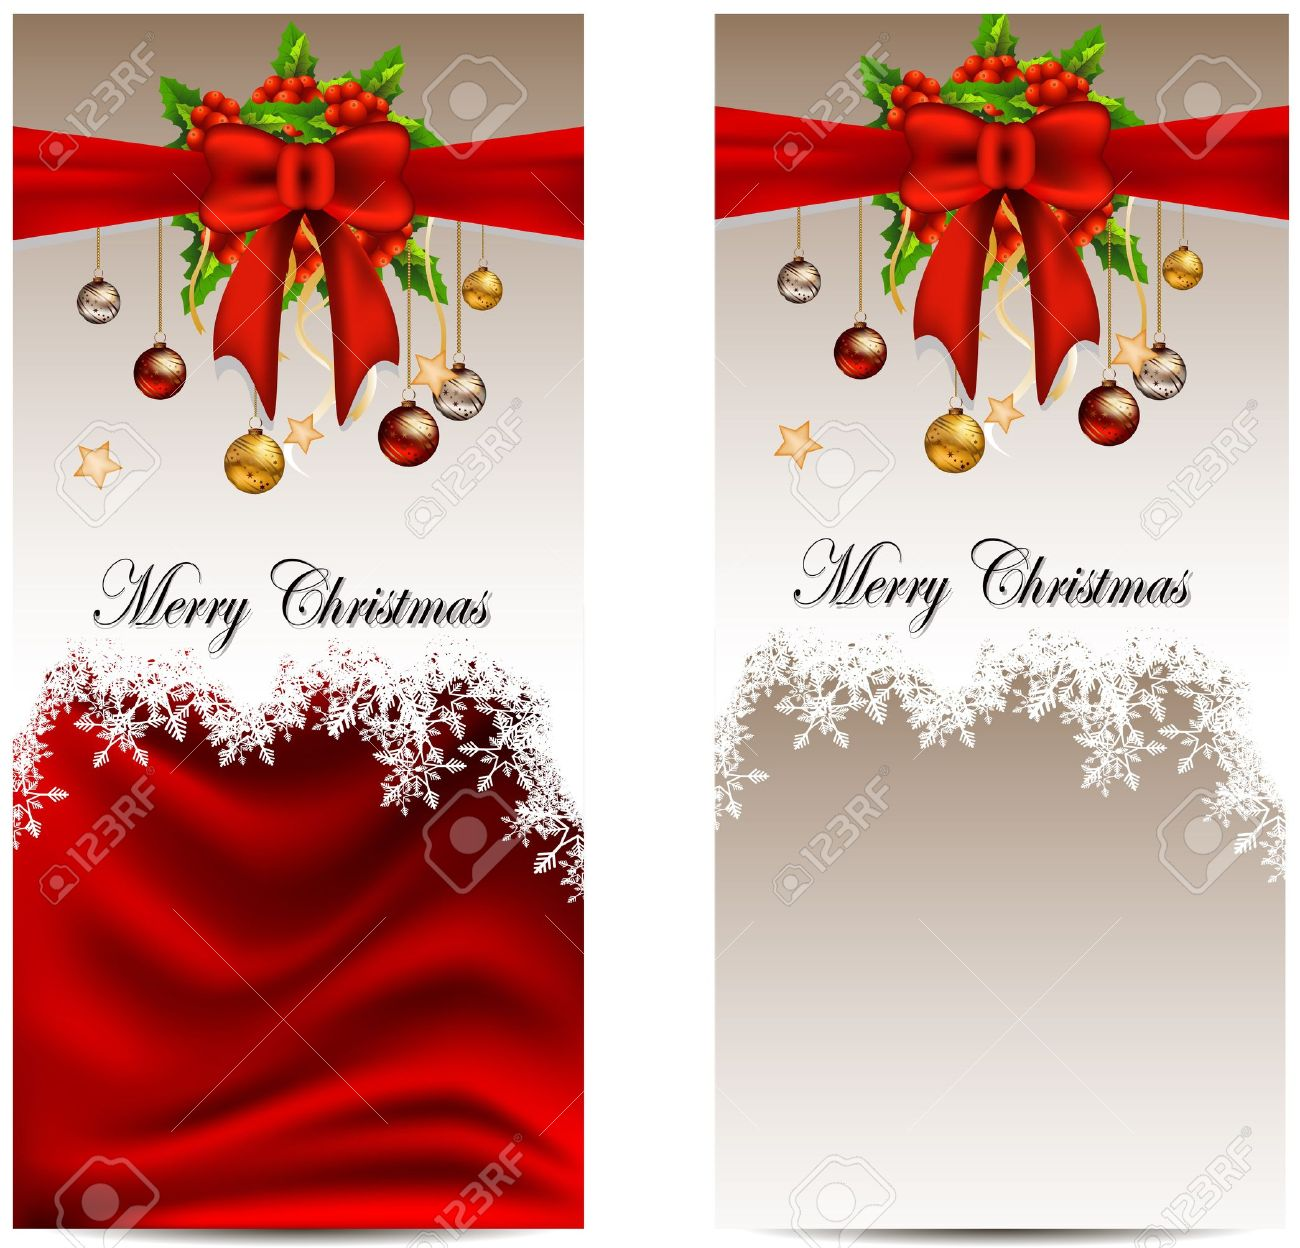 Free Christmas Card Email Templates christian preschool director – Christmas Cards Sample